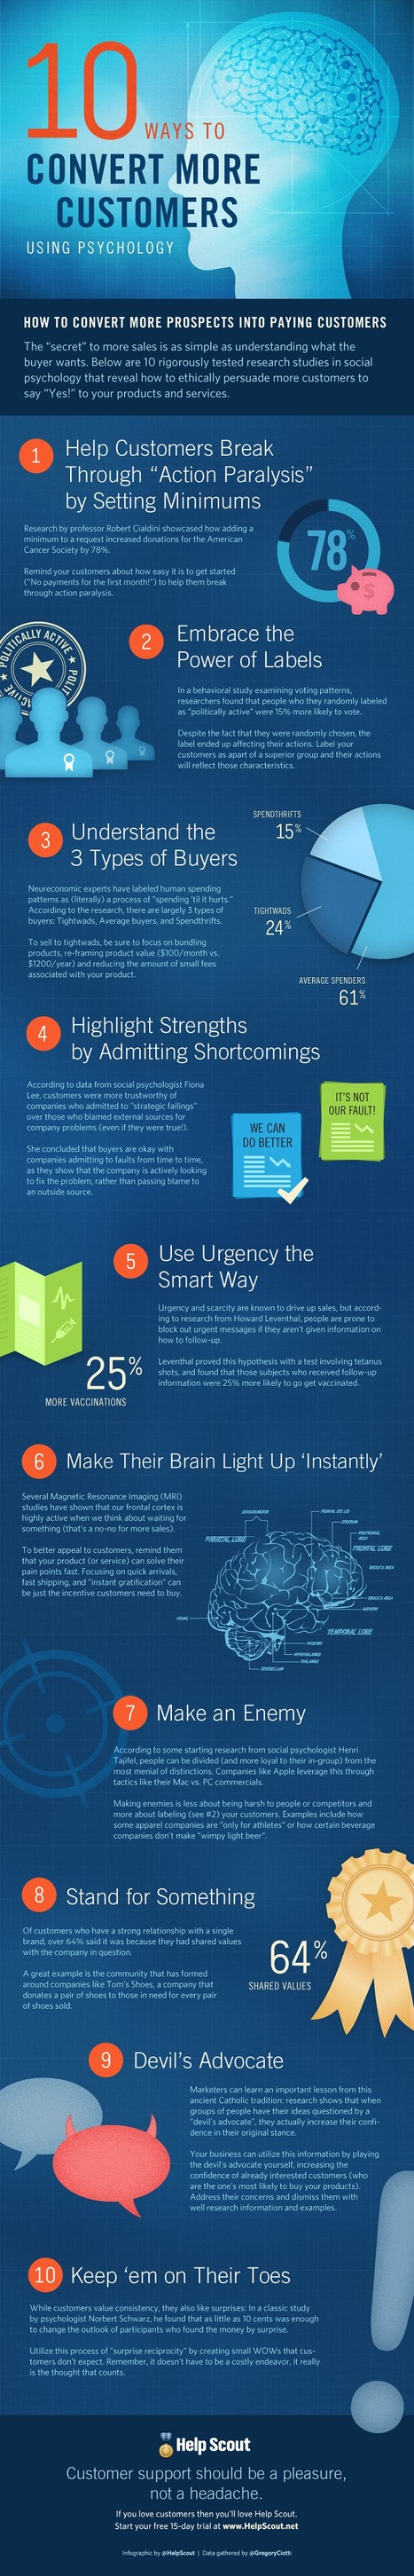 10 Ways to Convert More Customers With Psychology [INFOGRAPHIC] | AtoZ-Facebook,Twitter, Linkedin Marketing Social media2 | Scoop.it